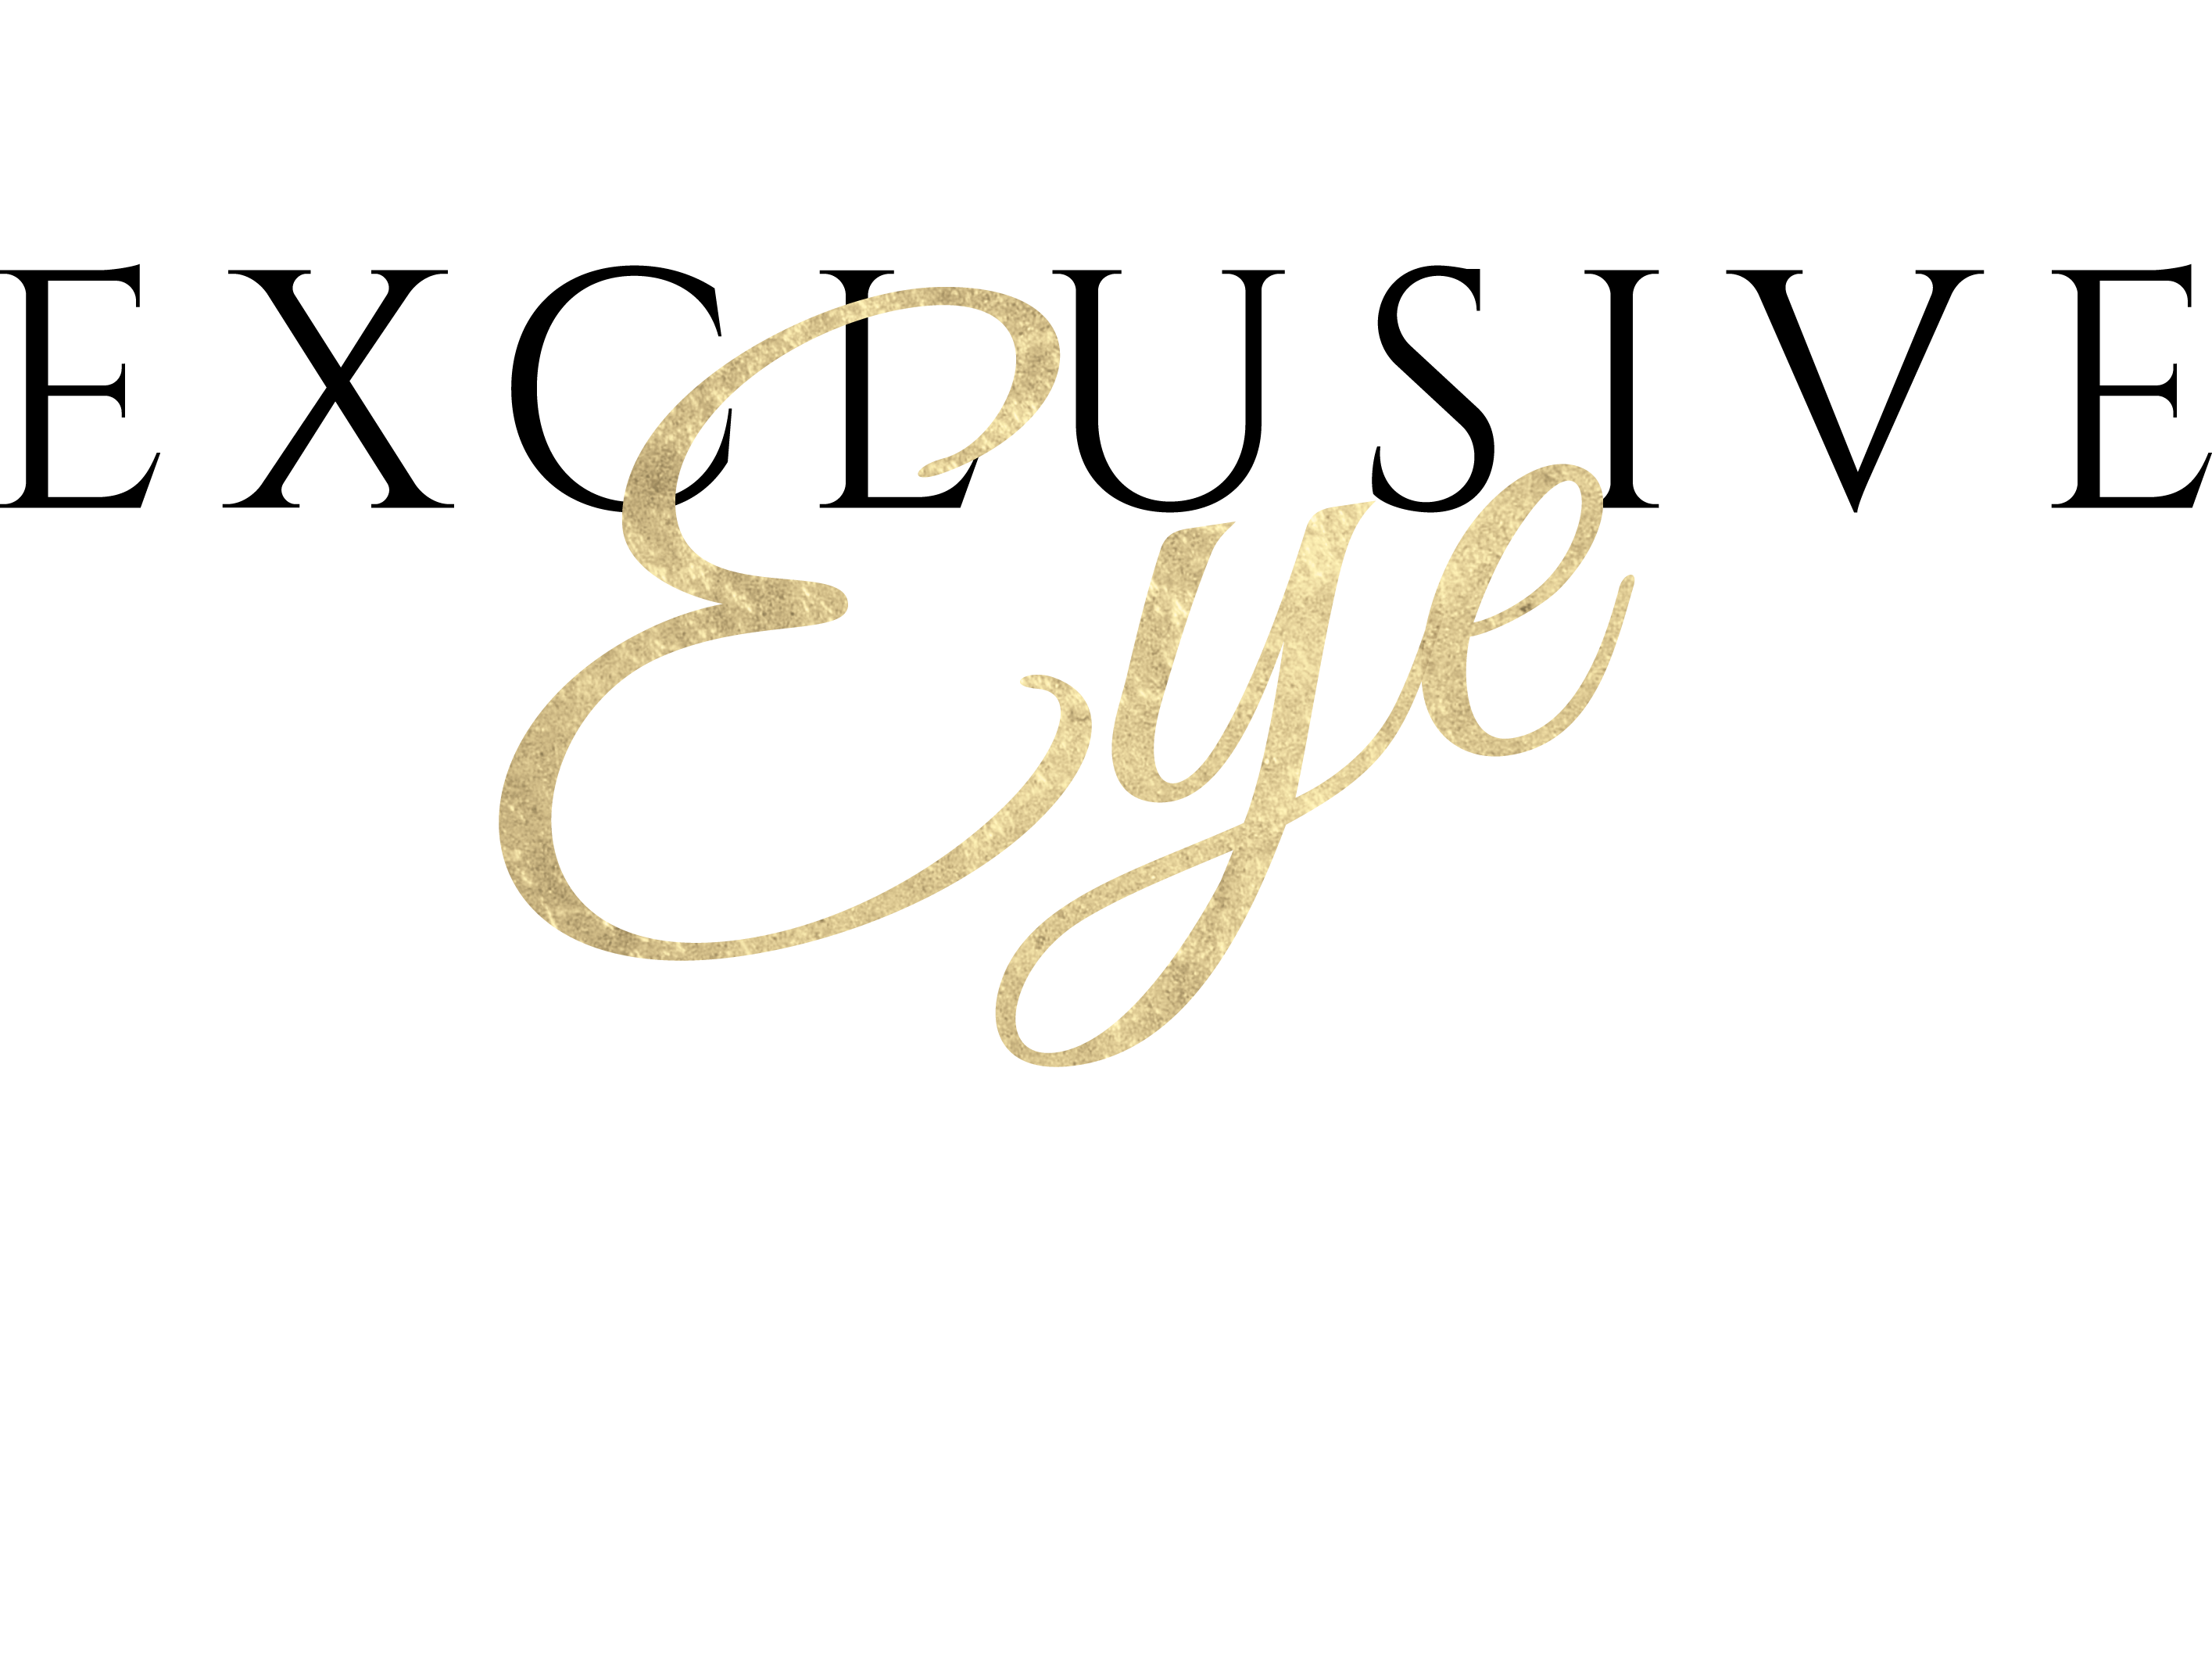 The Exclusive Eye Logo